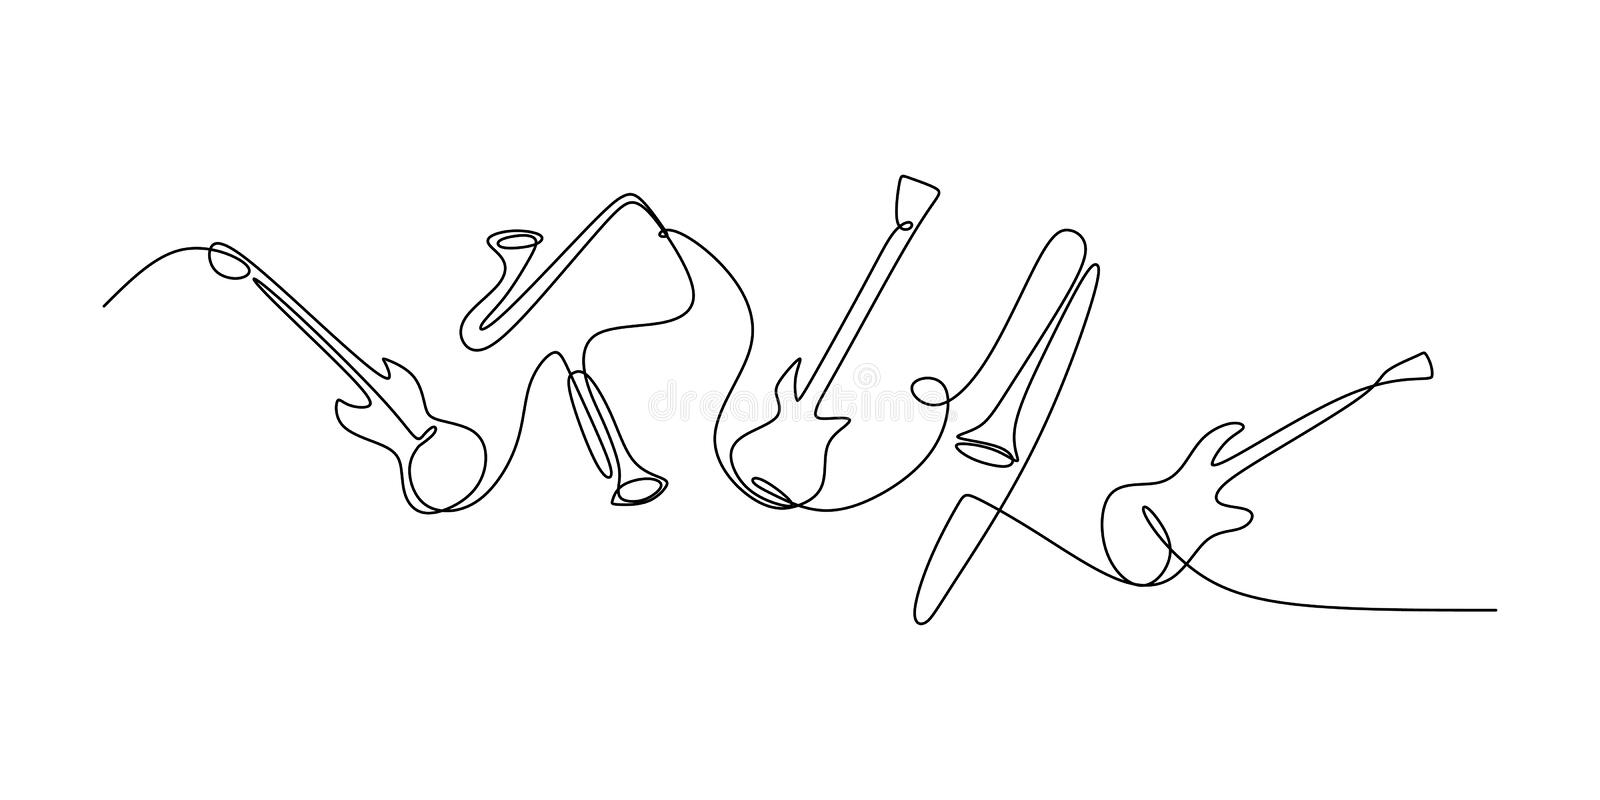 continuous line drawing of jazz instrument. Musical tools of electric guitar, trumpet, violin, bass, and saxophone vector illustration